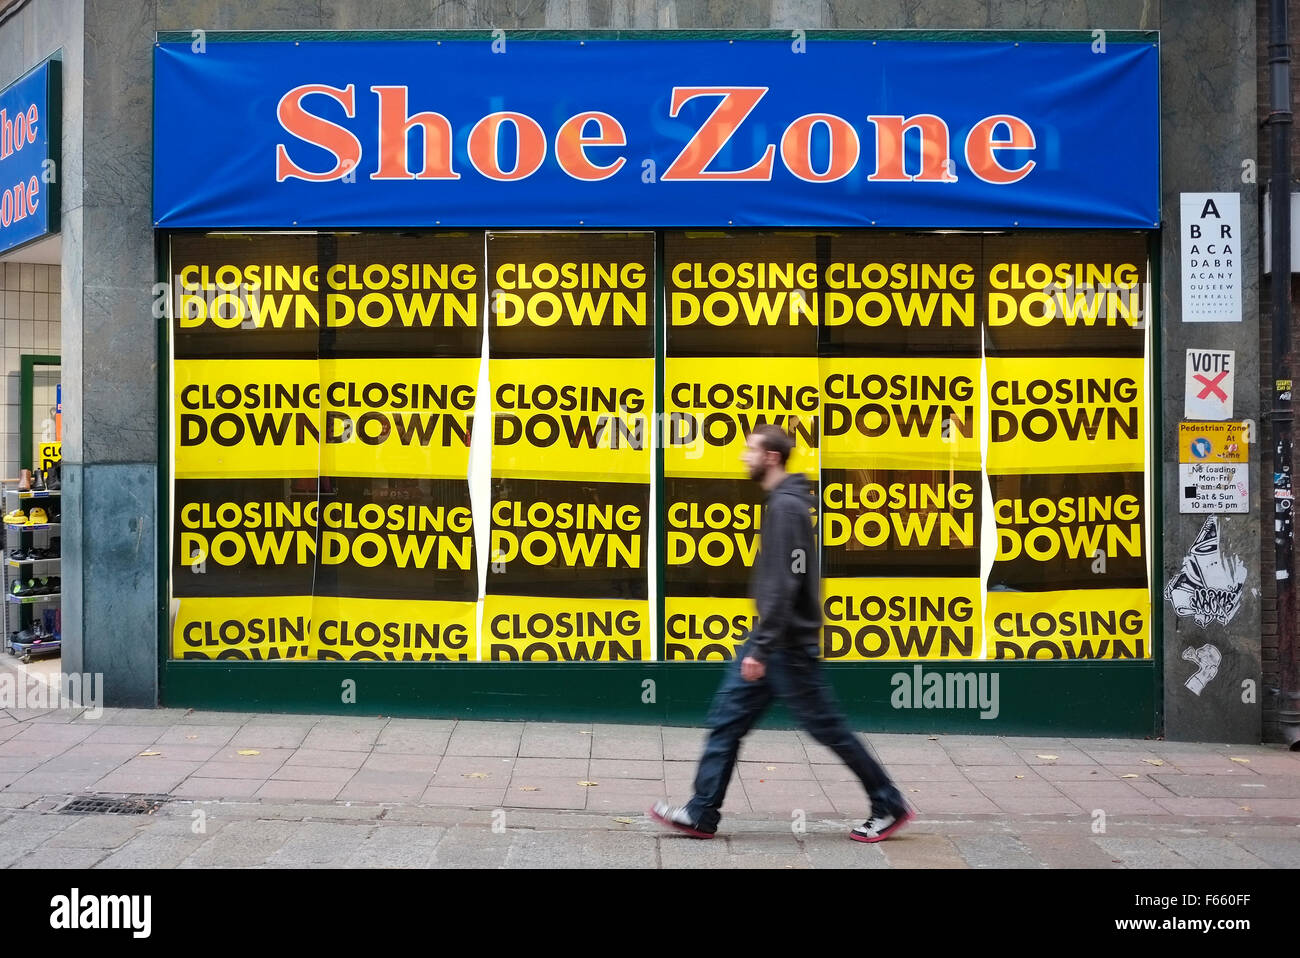 store closing down, norwich, norfolk, england - Stock Image